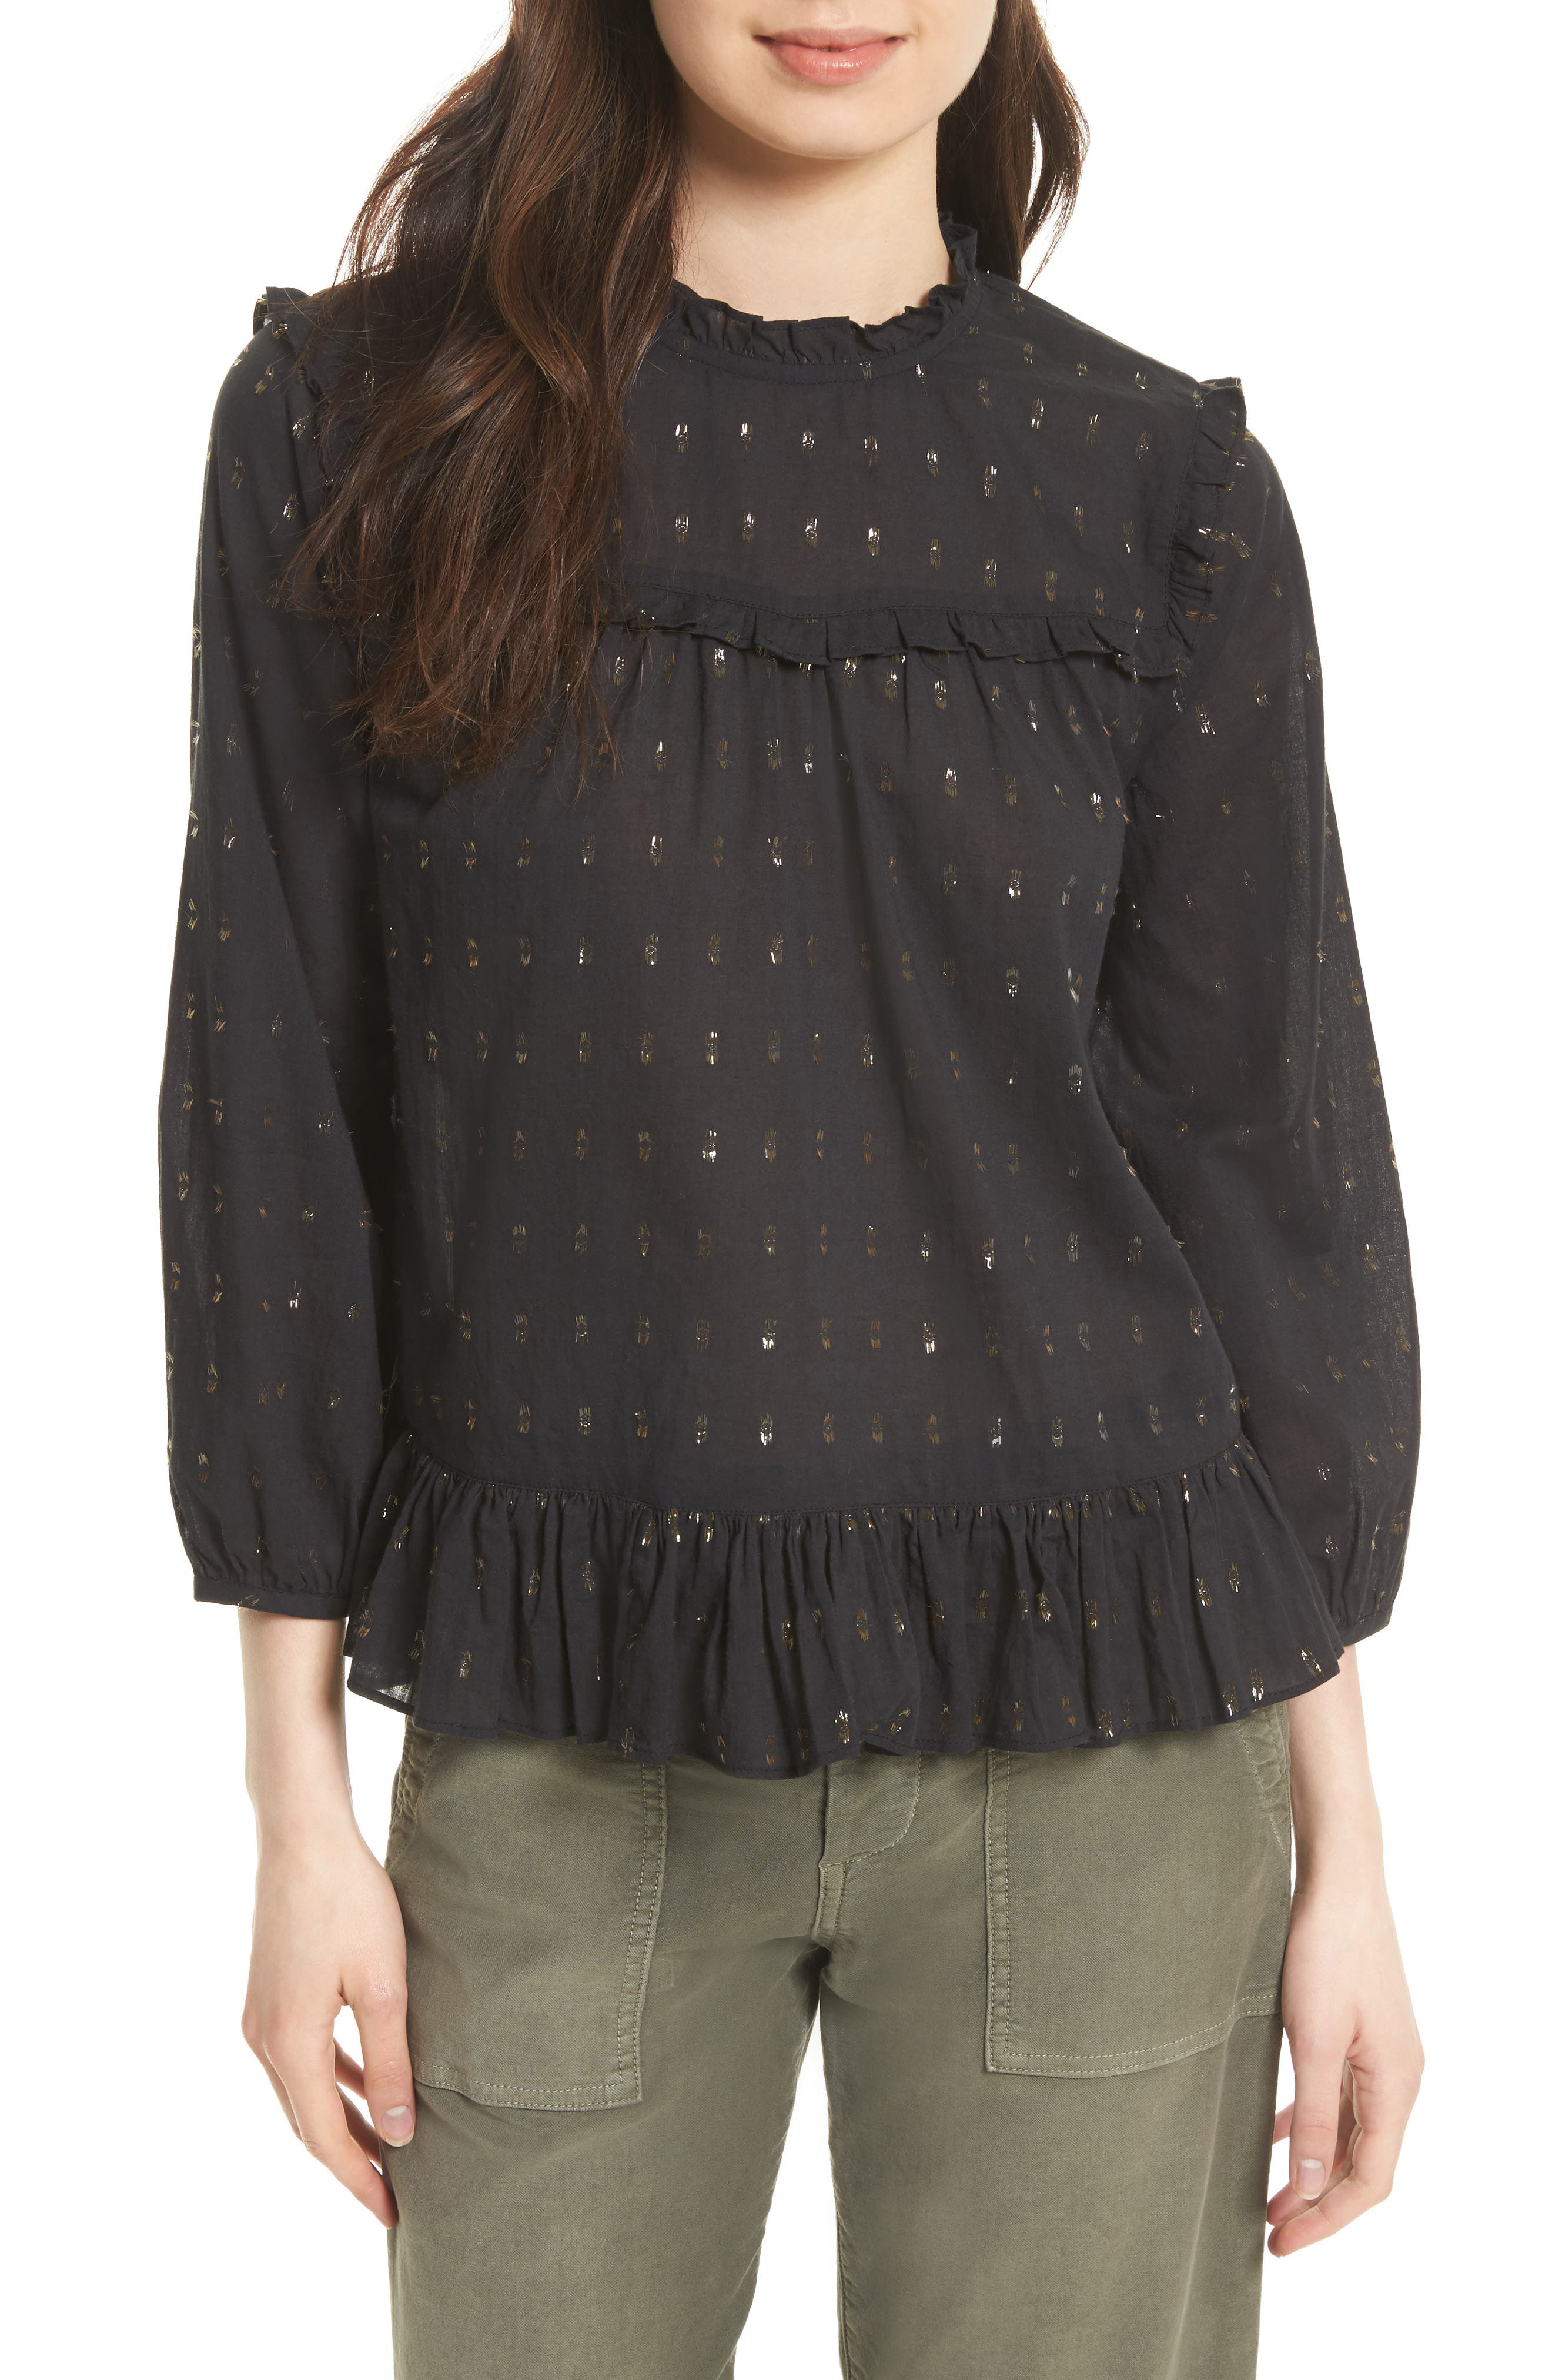 JOIE Gianella Metallic Clip Blouse